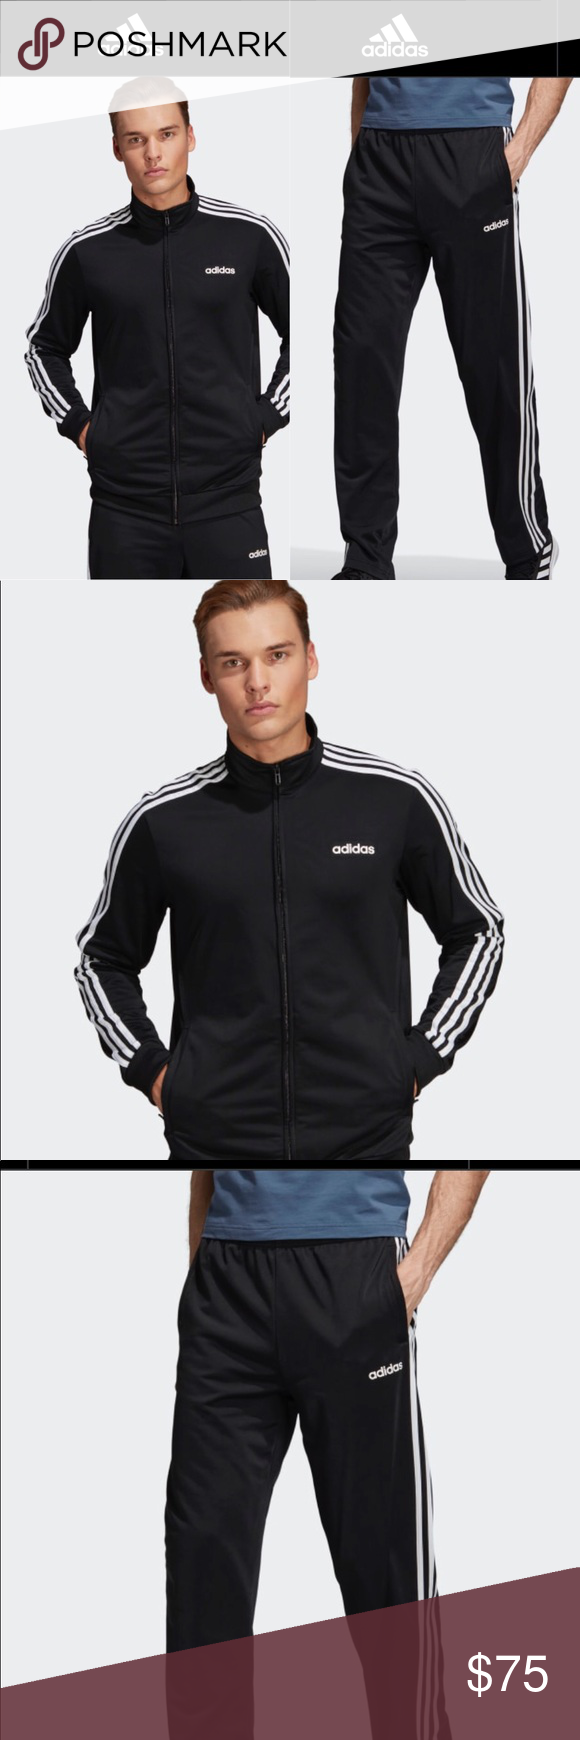 New Women's ADIDAS Jacket New in original packaging ADIDAS